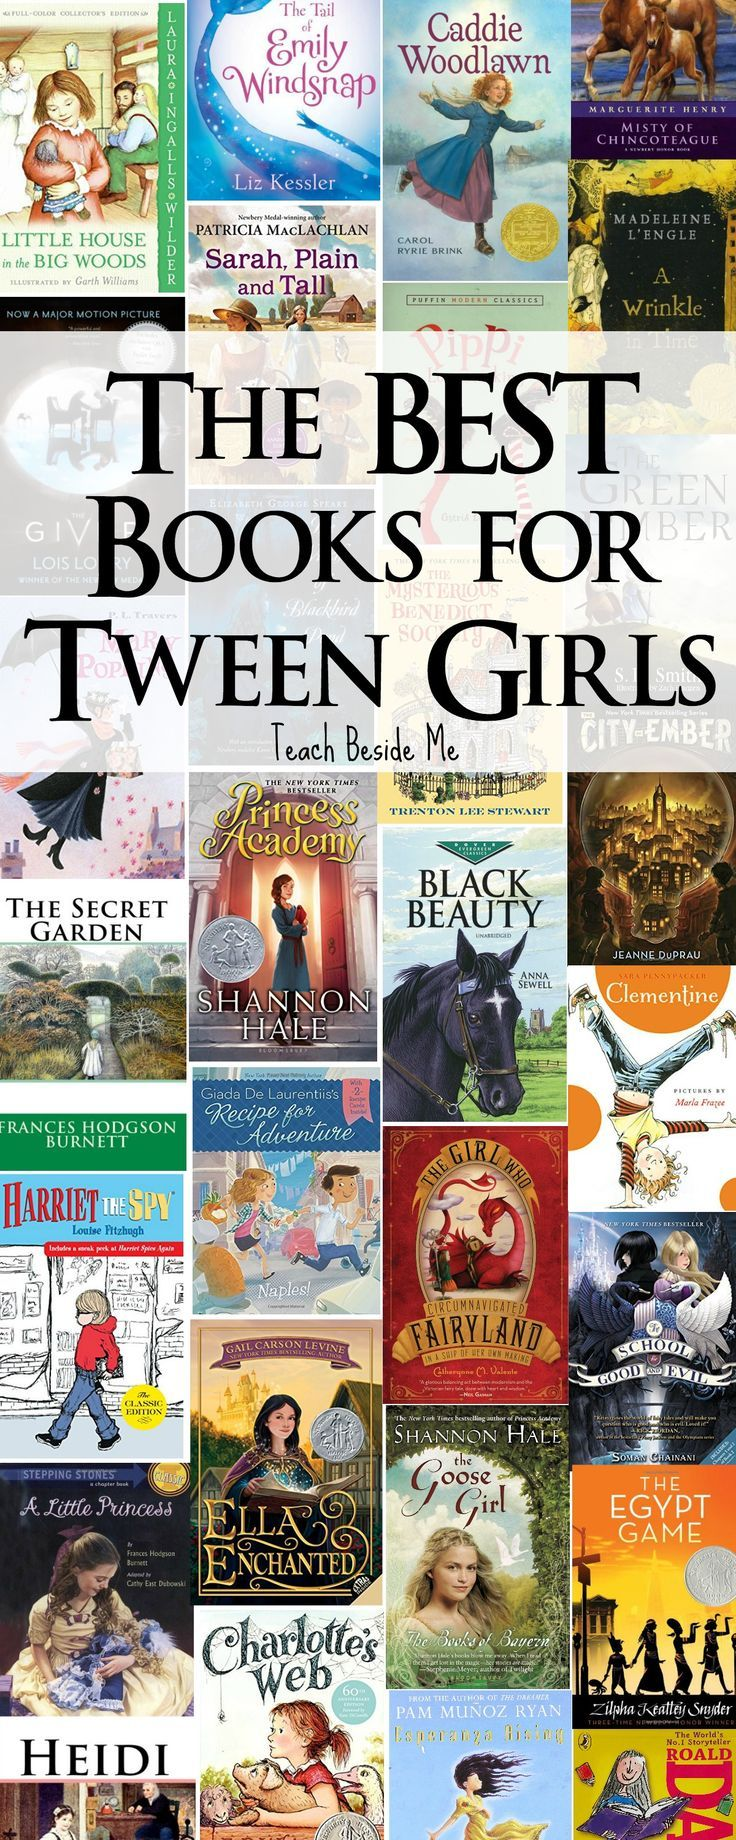 Best Books For Tween Girls  Books For Tween Girls, Books -1790